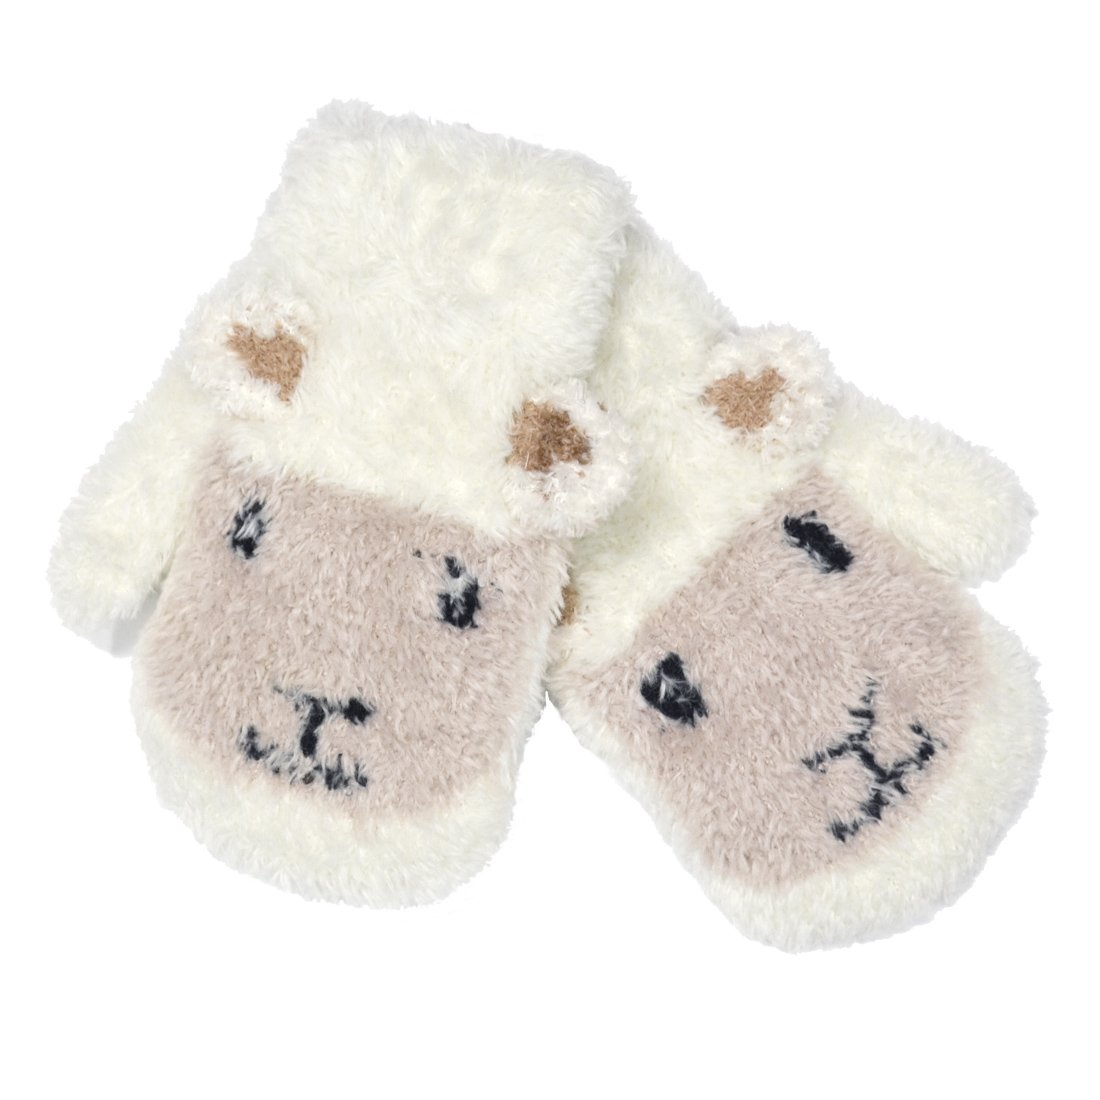 Patrick Francis Irish Design Sheep Mittens PF7383